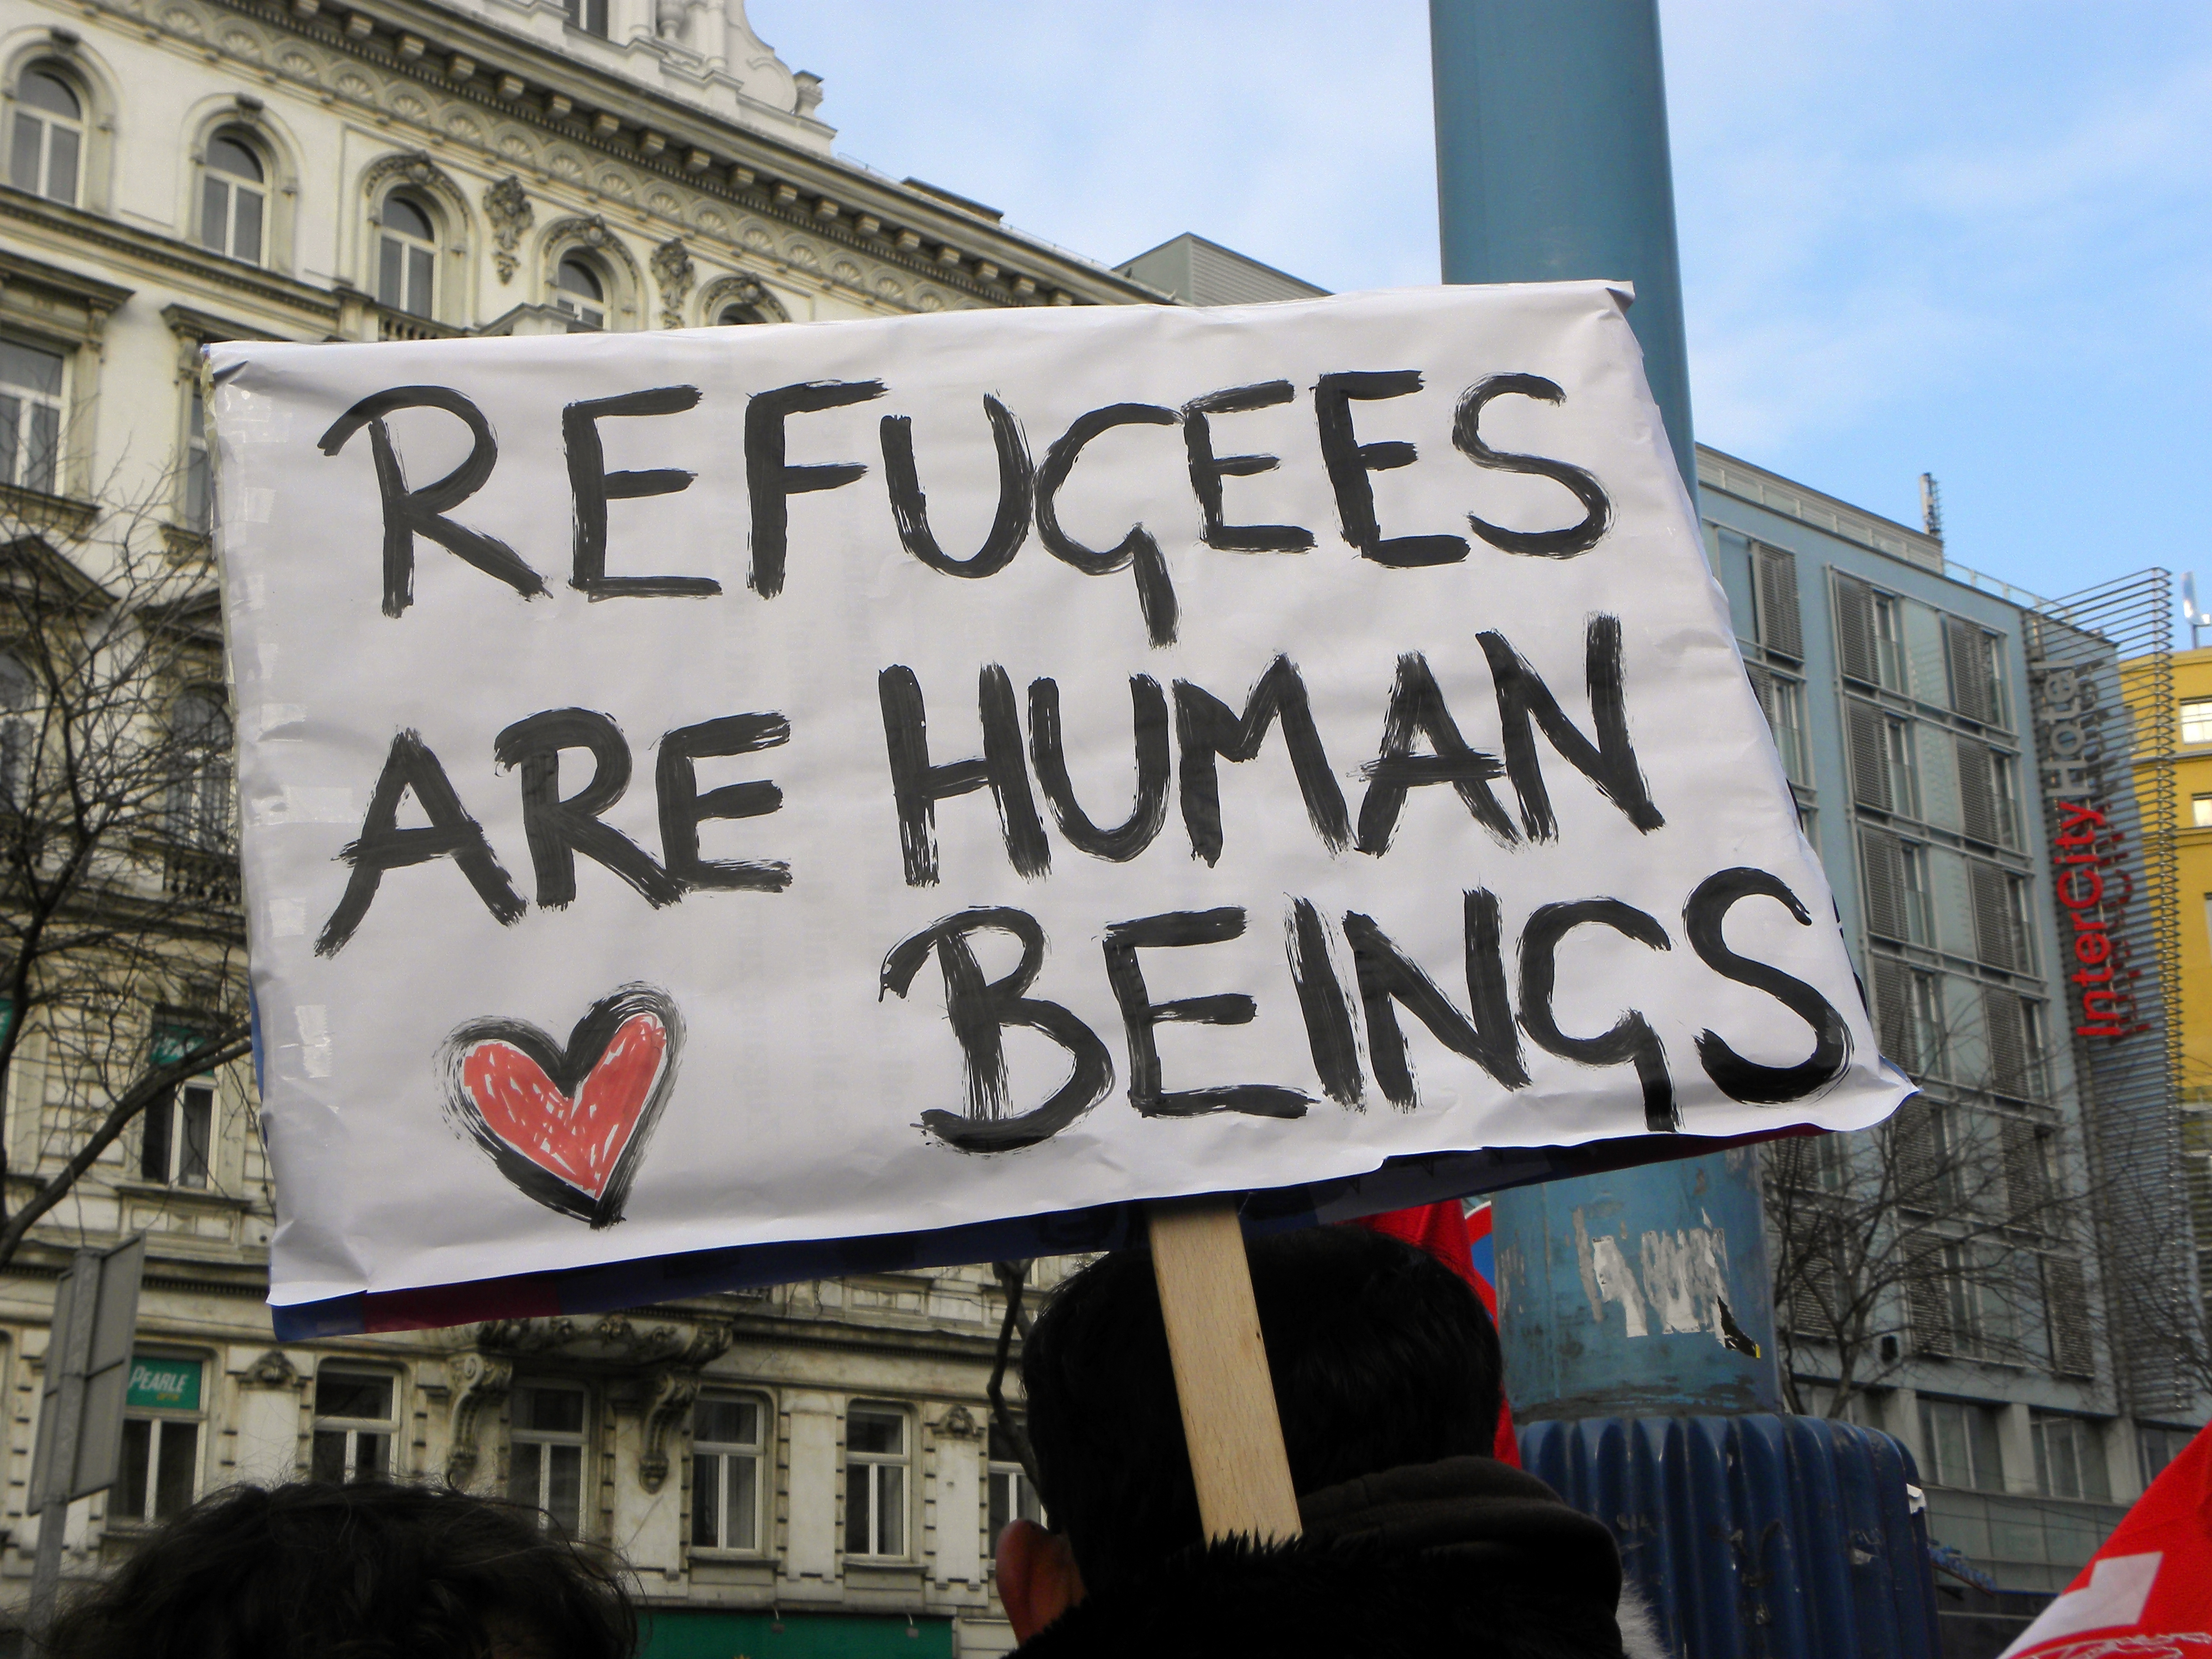 refugees_are_human_beings3